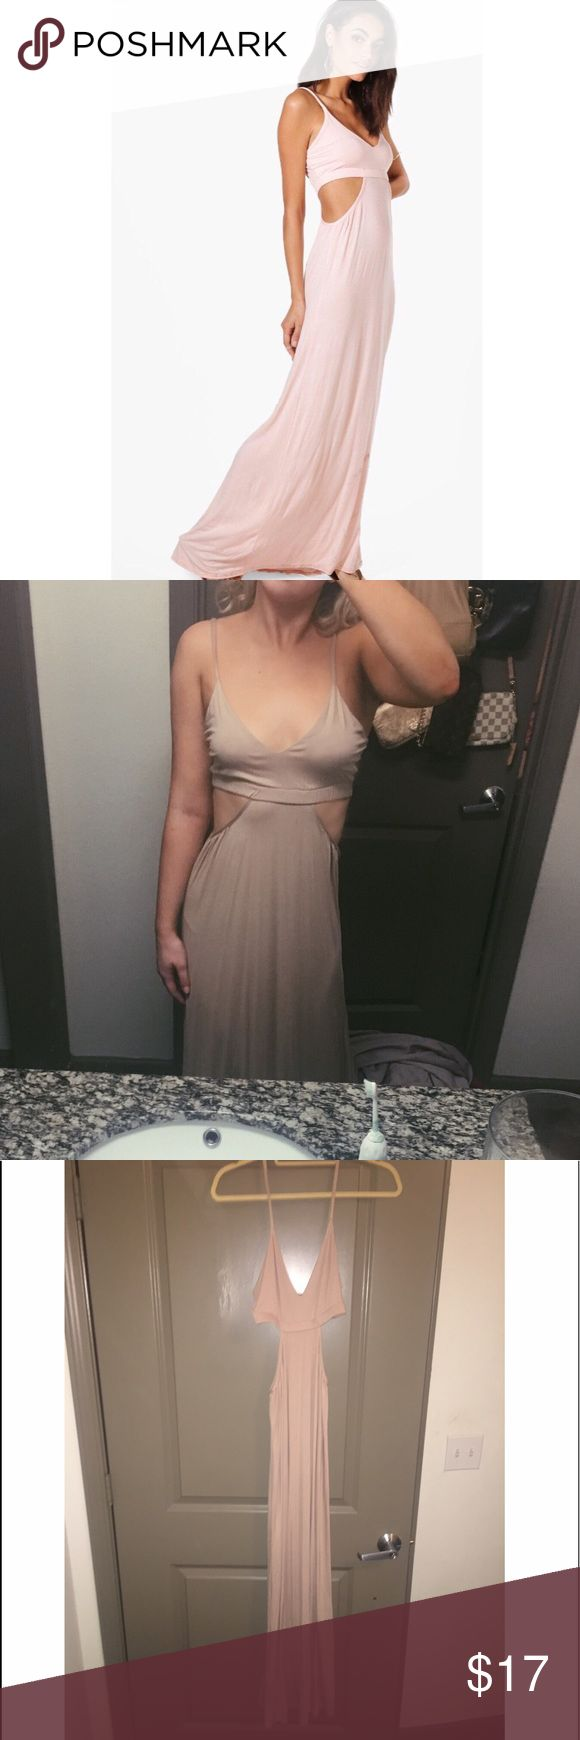 Nude beige boohoo maxi dress with side cut outs Really cute and comfortable nude maxi dress with two side cut outs that show your waist from boohoo! Never worn and perfect condition. Perfect with some sandals for summer! Boohoo Dresses Maxi